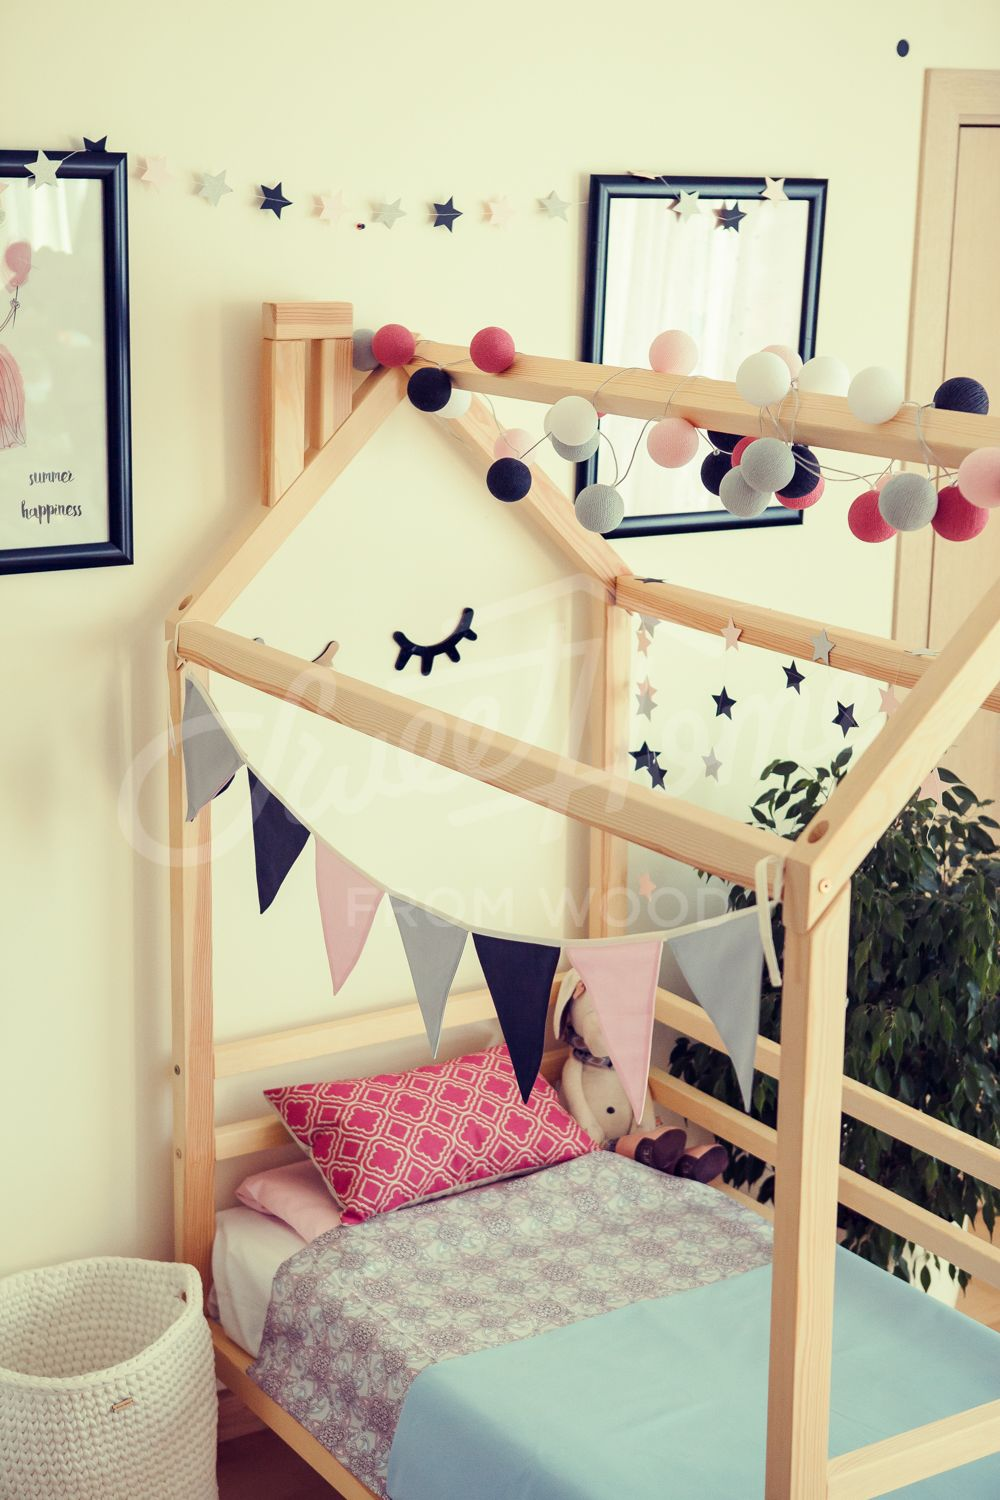 Toddler bed Twinf or (King) SINGLE size house bed children bed frame bed kid nursery bed floor bed Montessori furniture play bed tent bed & Toddler bed house bed tent bed children bed wooden house wood ...